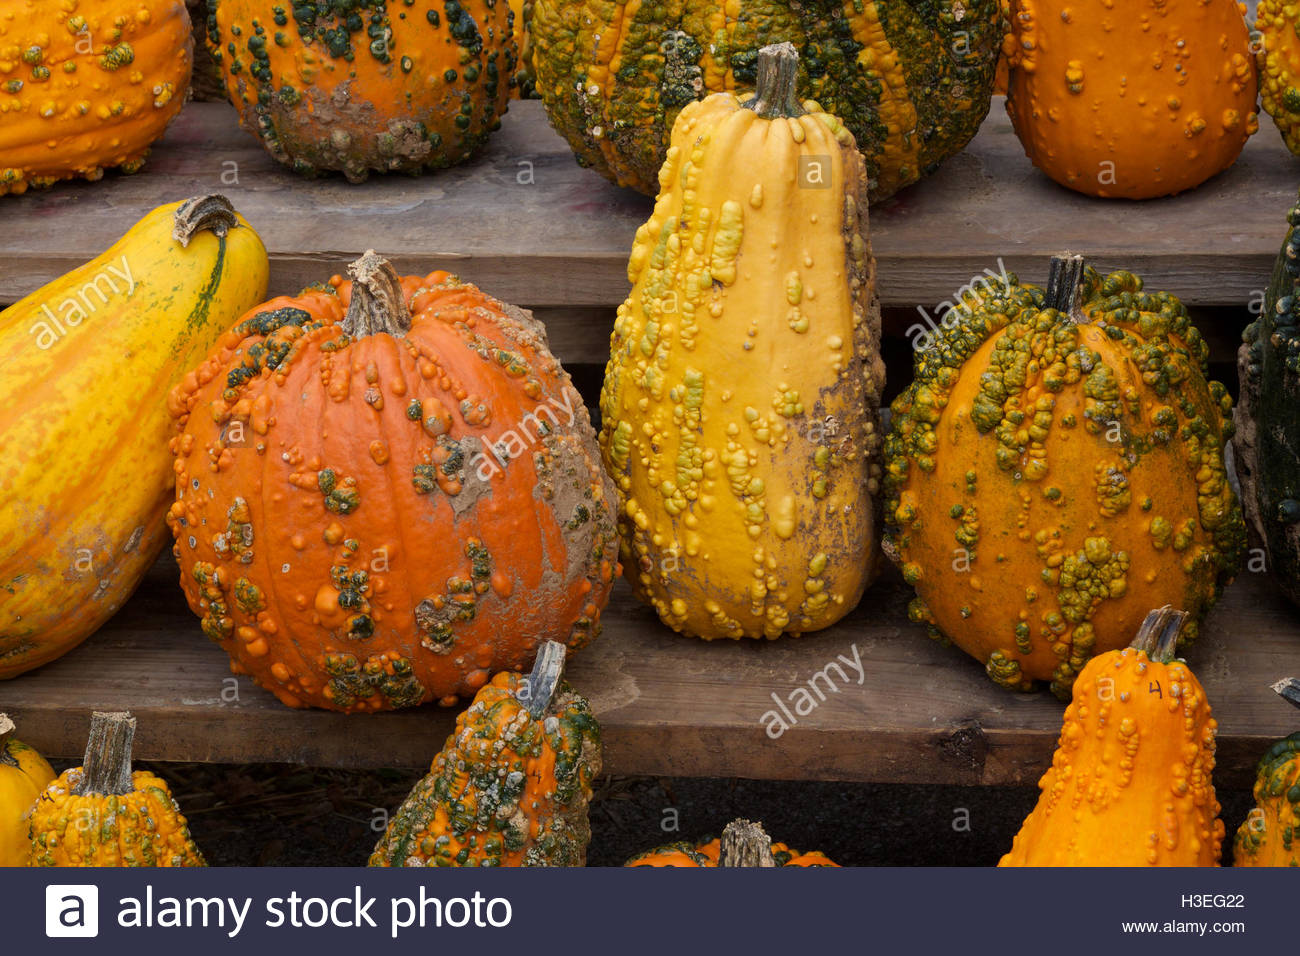 Colorful pumpkins and gourds on wooden board at a pumpkin patch in New Berlin, Wisconsin. - Stock Image